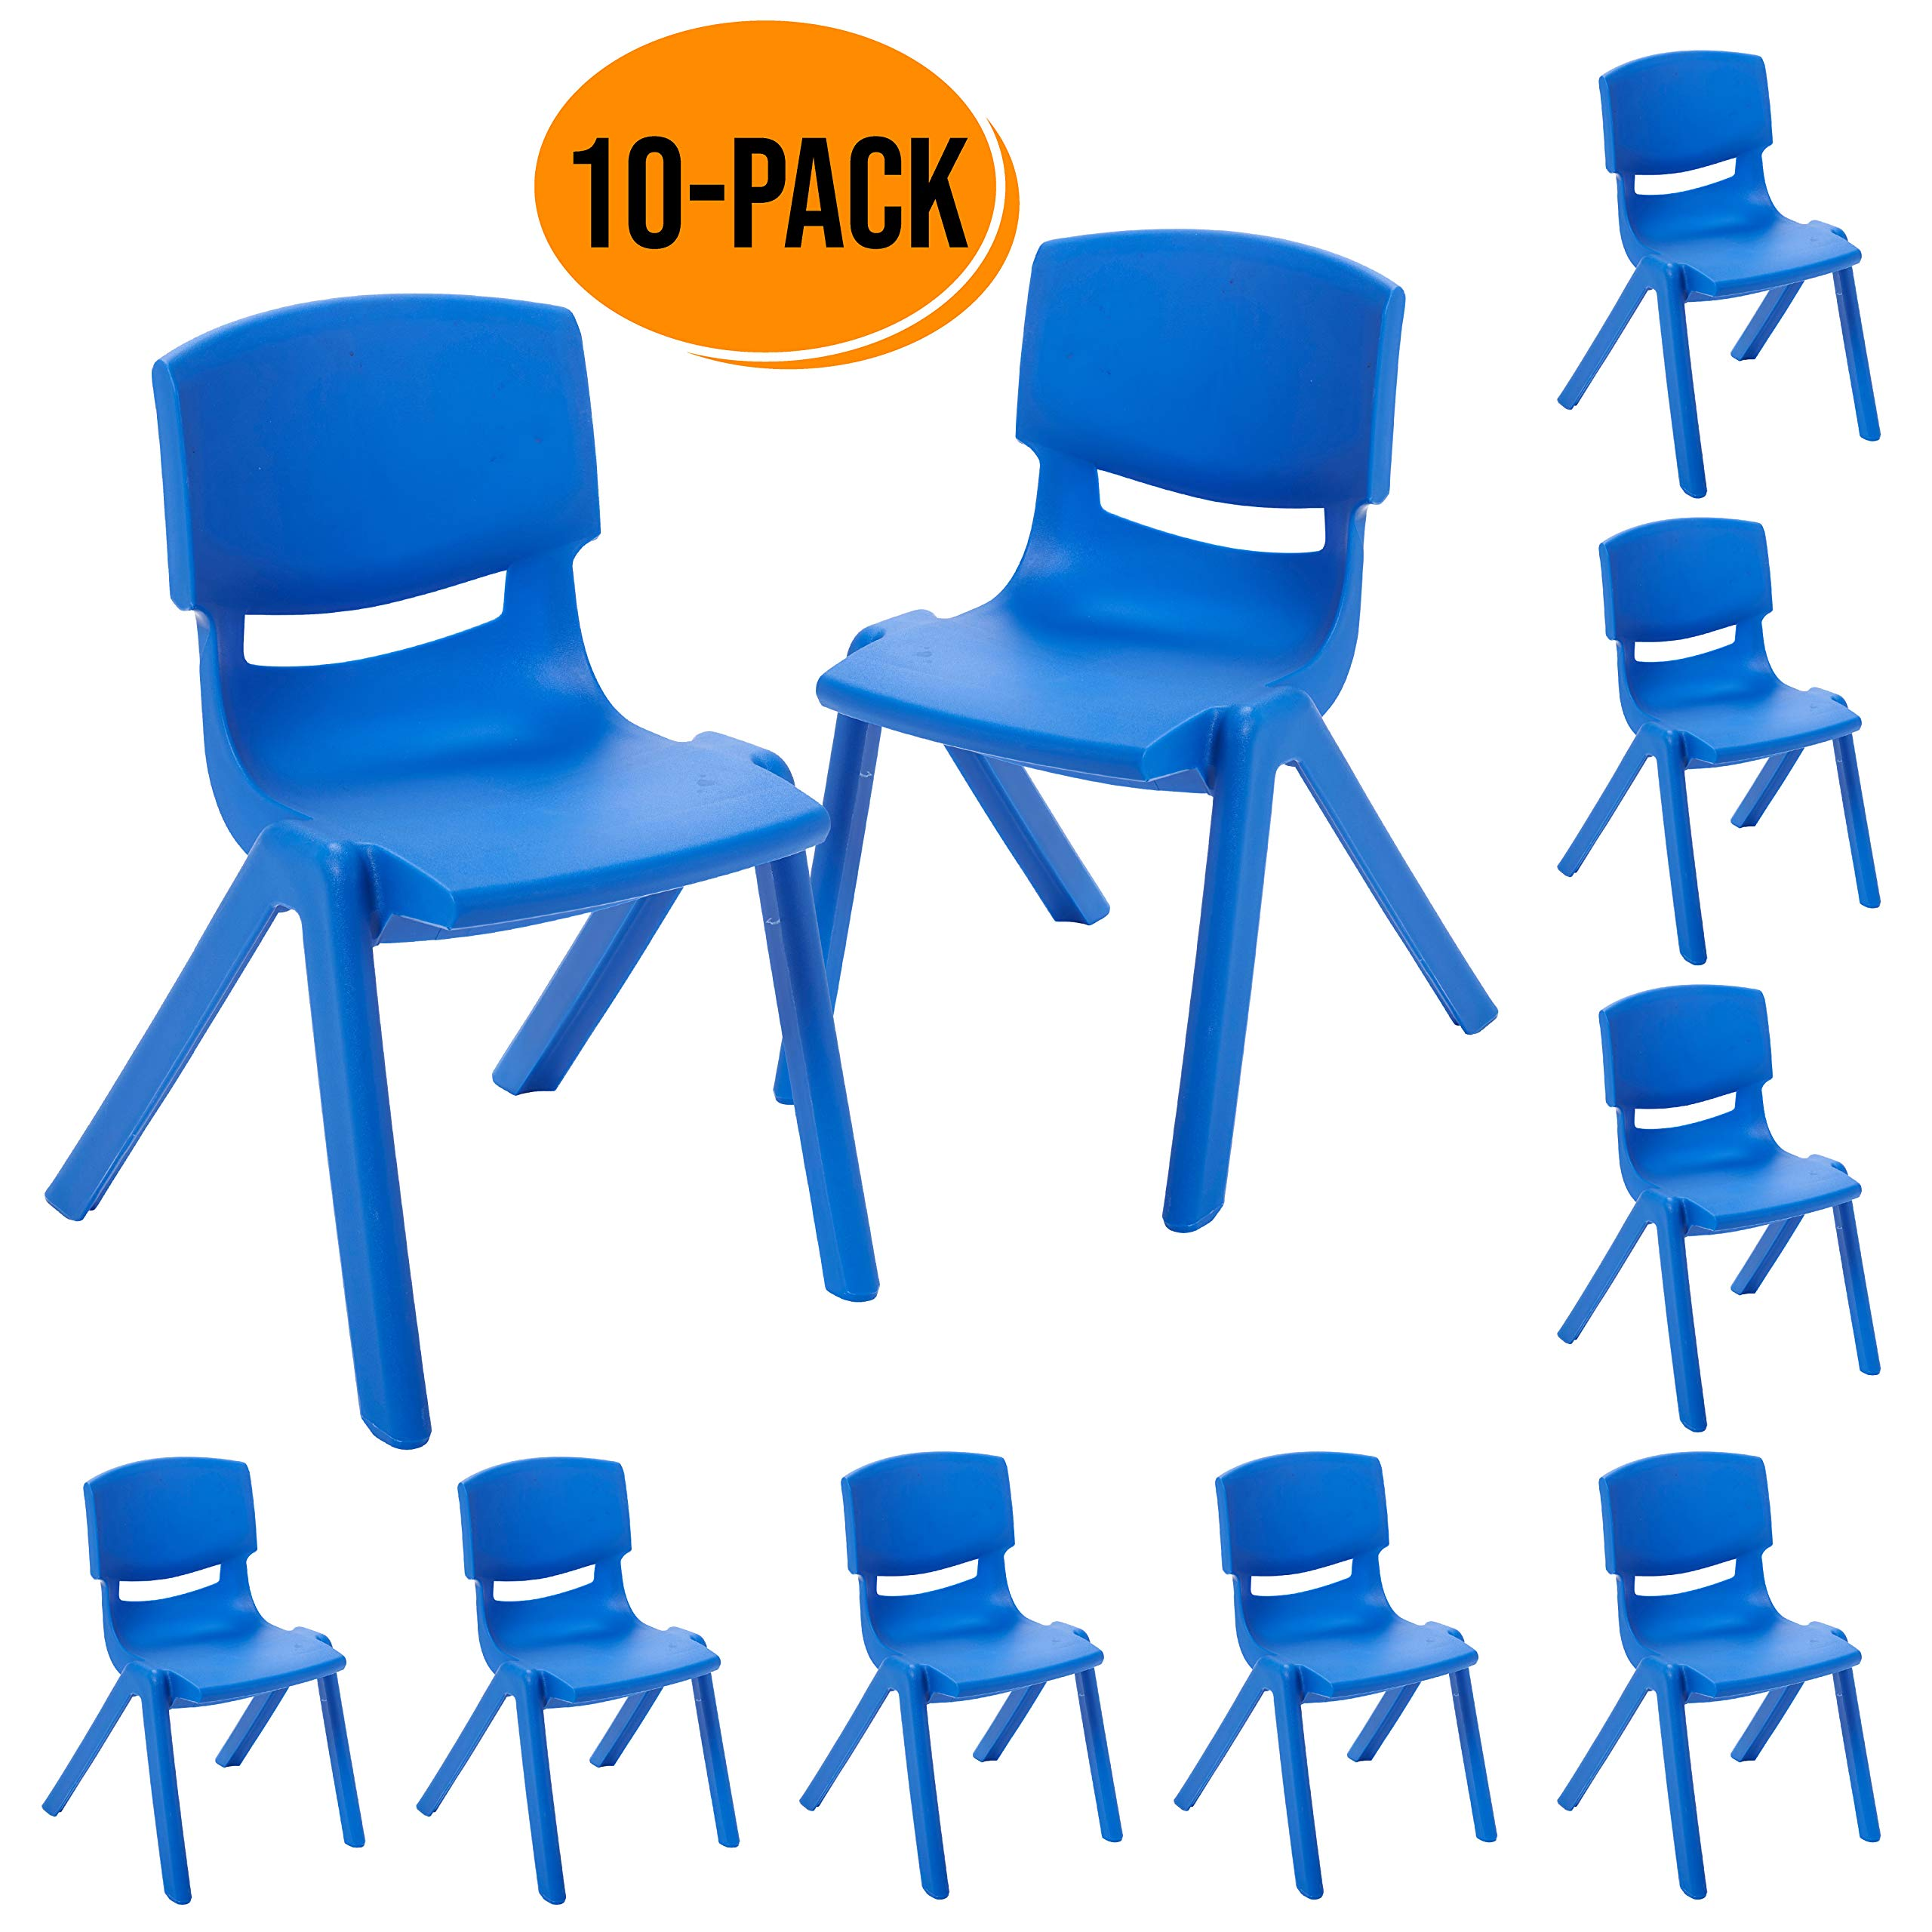 ECR4Kids 10 inch Plastic Stackable Classroom Chairs, Indoor/Outdoor Resin Stack Chairs for Kids, Blue (10-Pack) by ECR4Kids